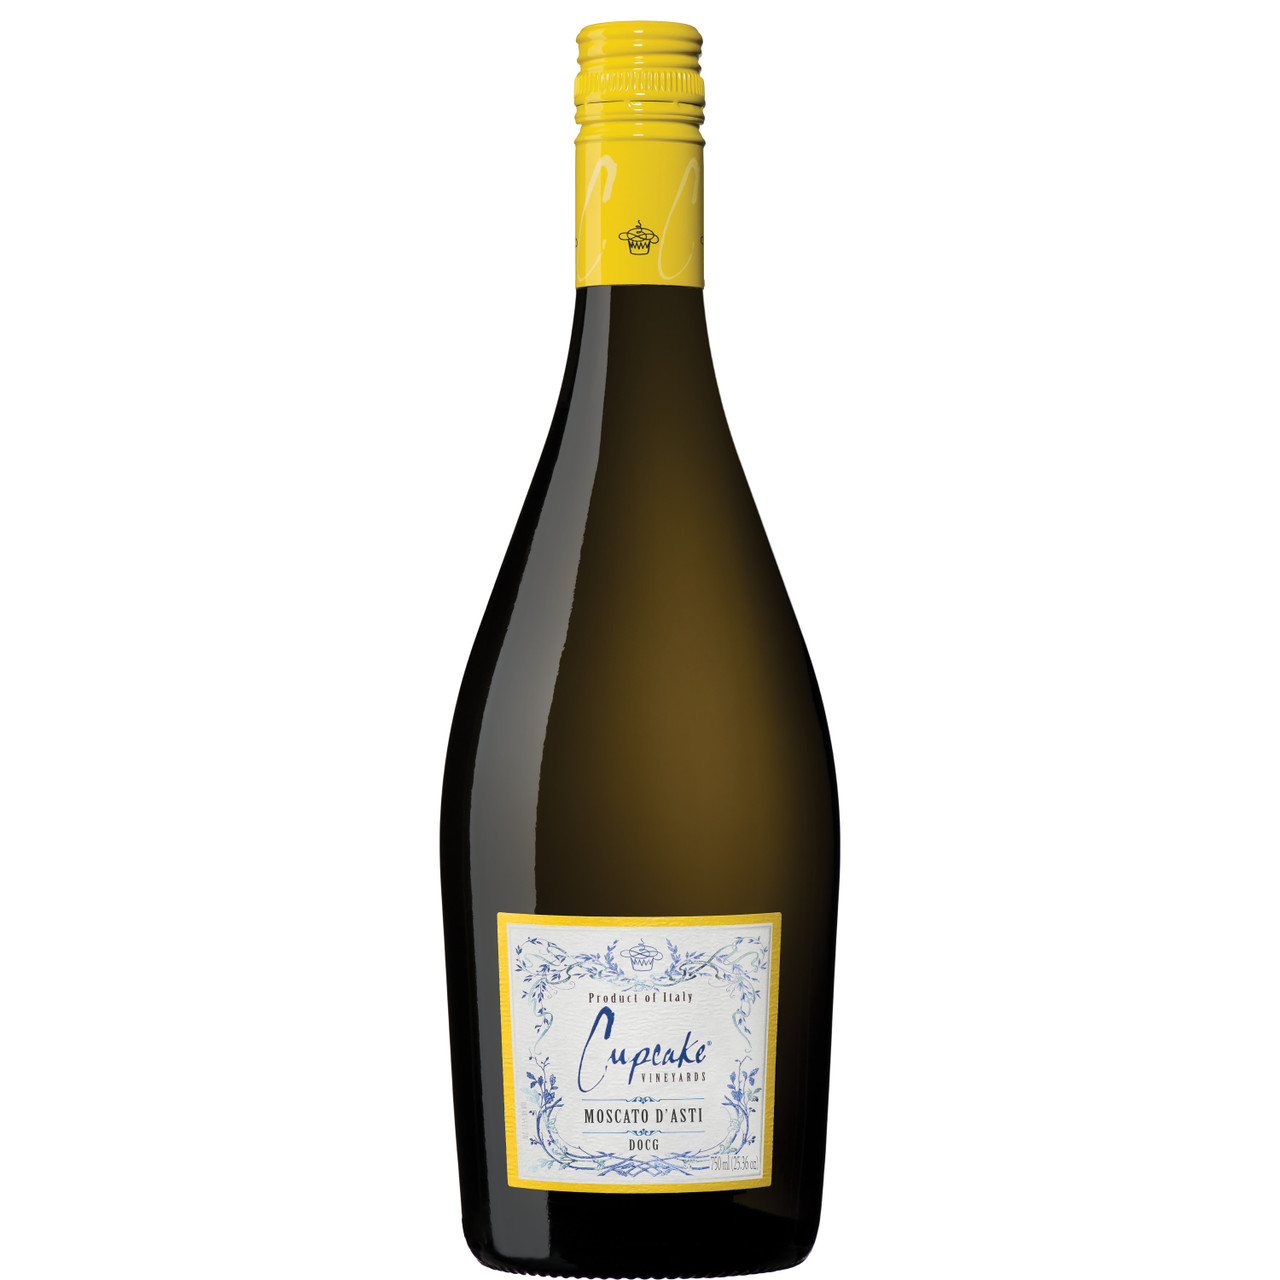 Vibrant and expressive with dominant floral notes and hints of bright fruit flavors -- including peach, tropical fruits and lychee -- this wine is soft and luscious. Just a hint of fine effervescence tickles the palate and balances the sweetness.